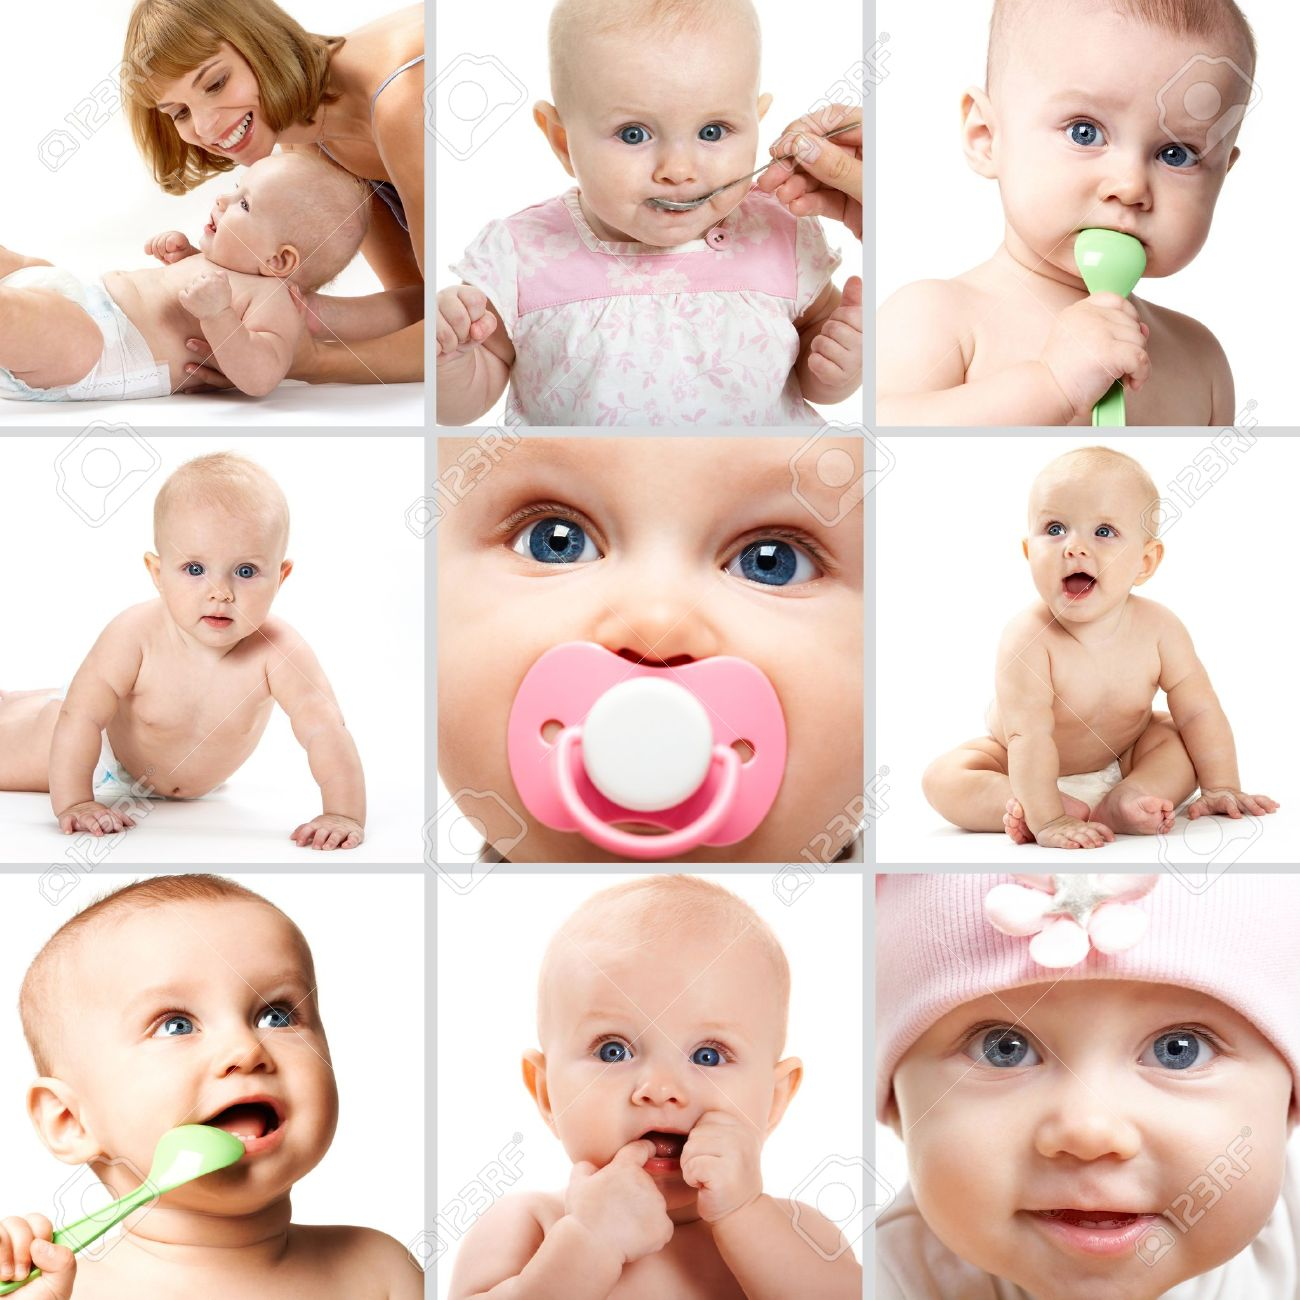 Collage Baby Images & Stock Pictures. Royalty Free Collage Baby ...